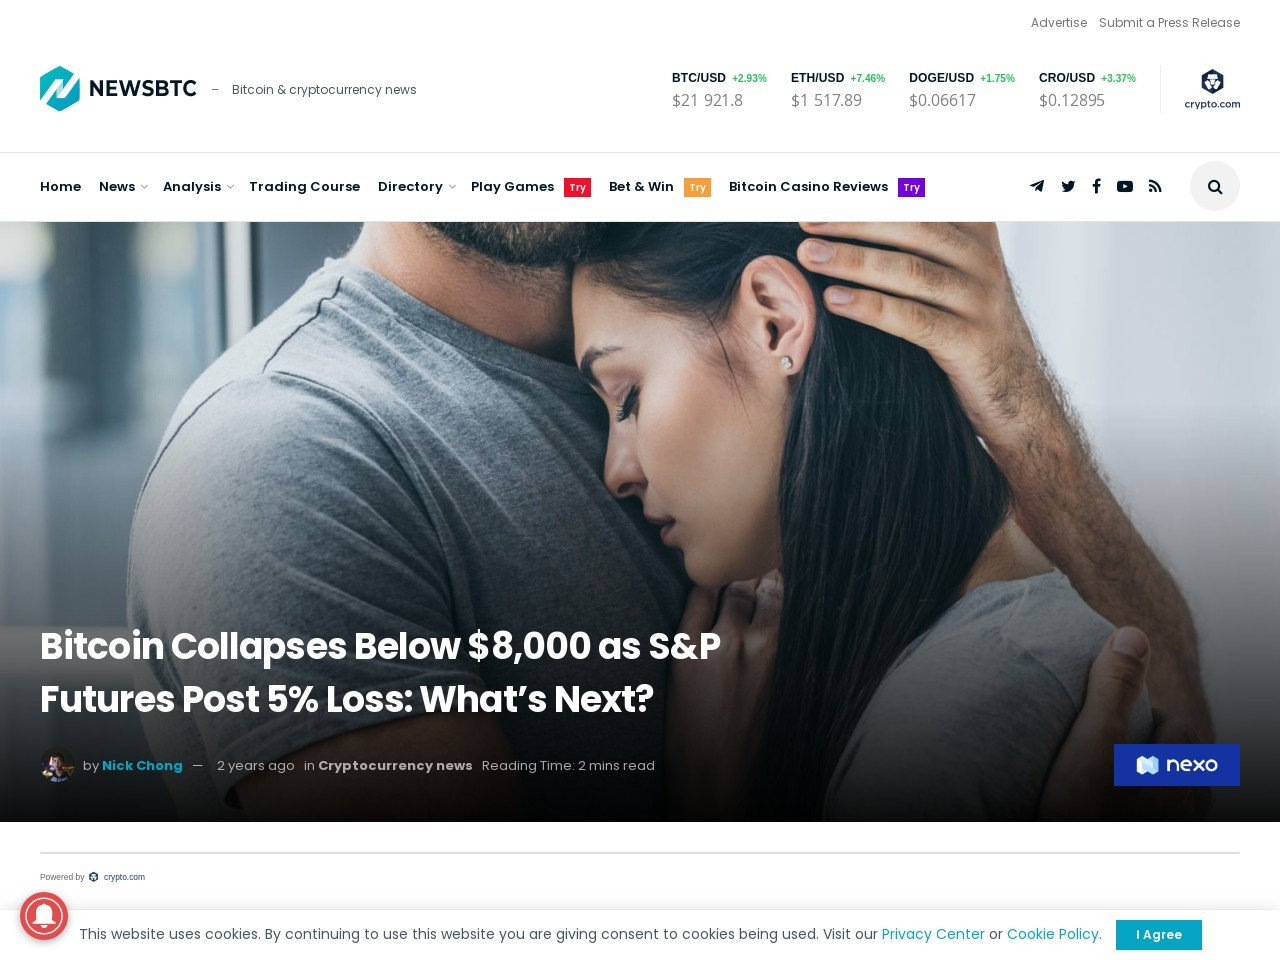 Bitcoin Collapses Below $8,000 as S&P Futures Post 5% Loss: What's Next?